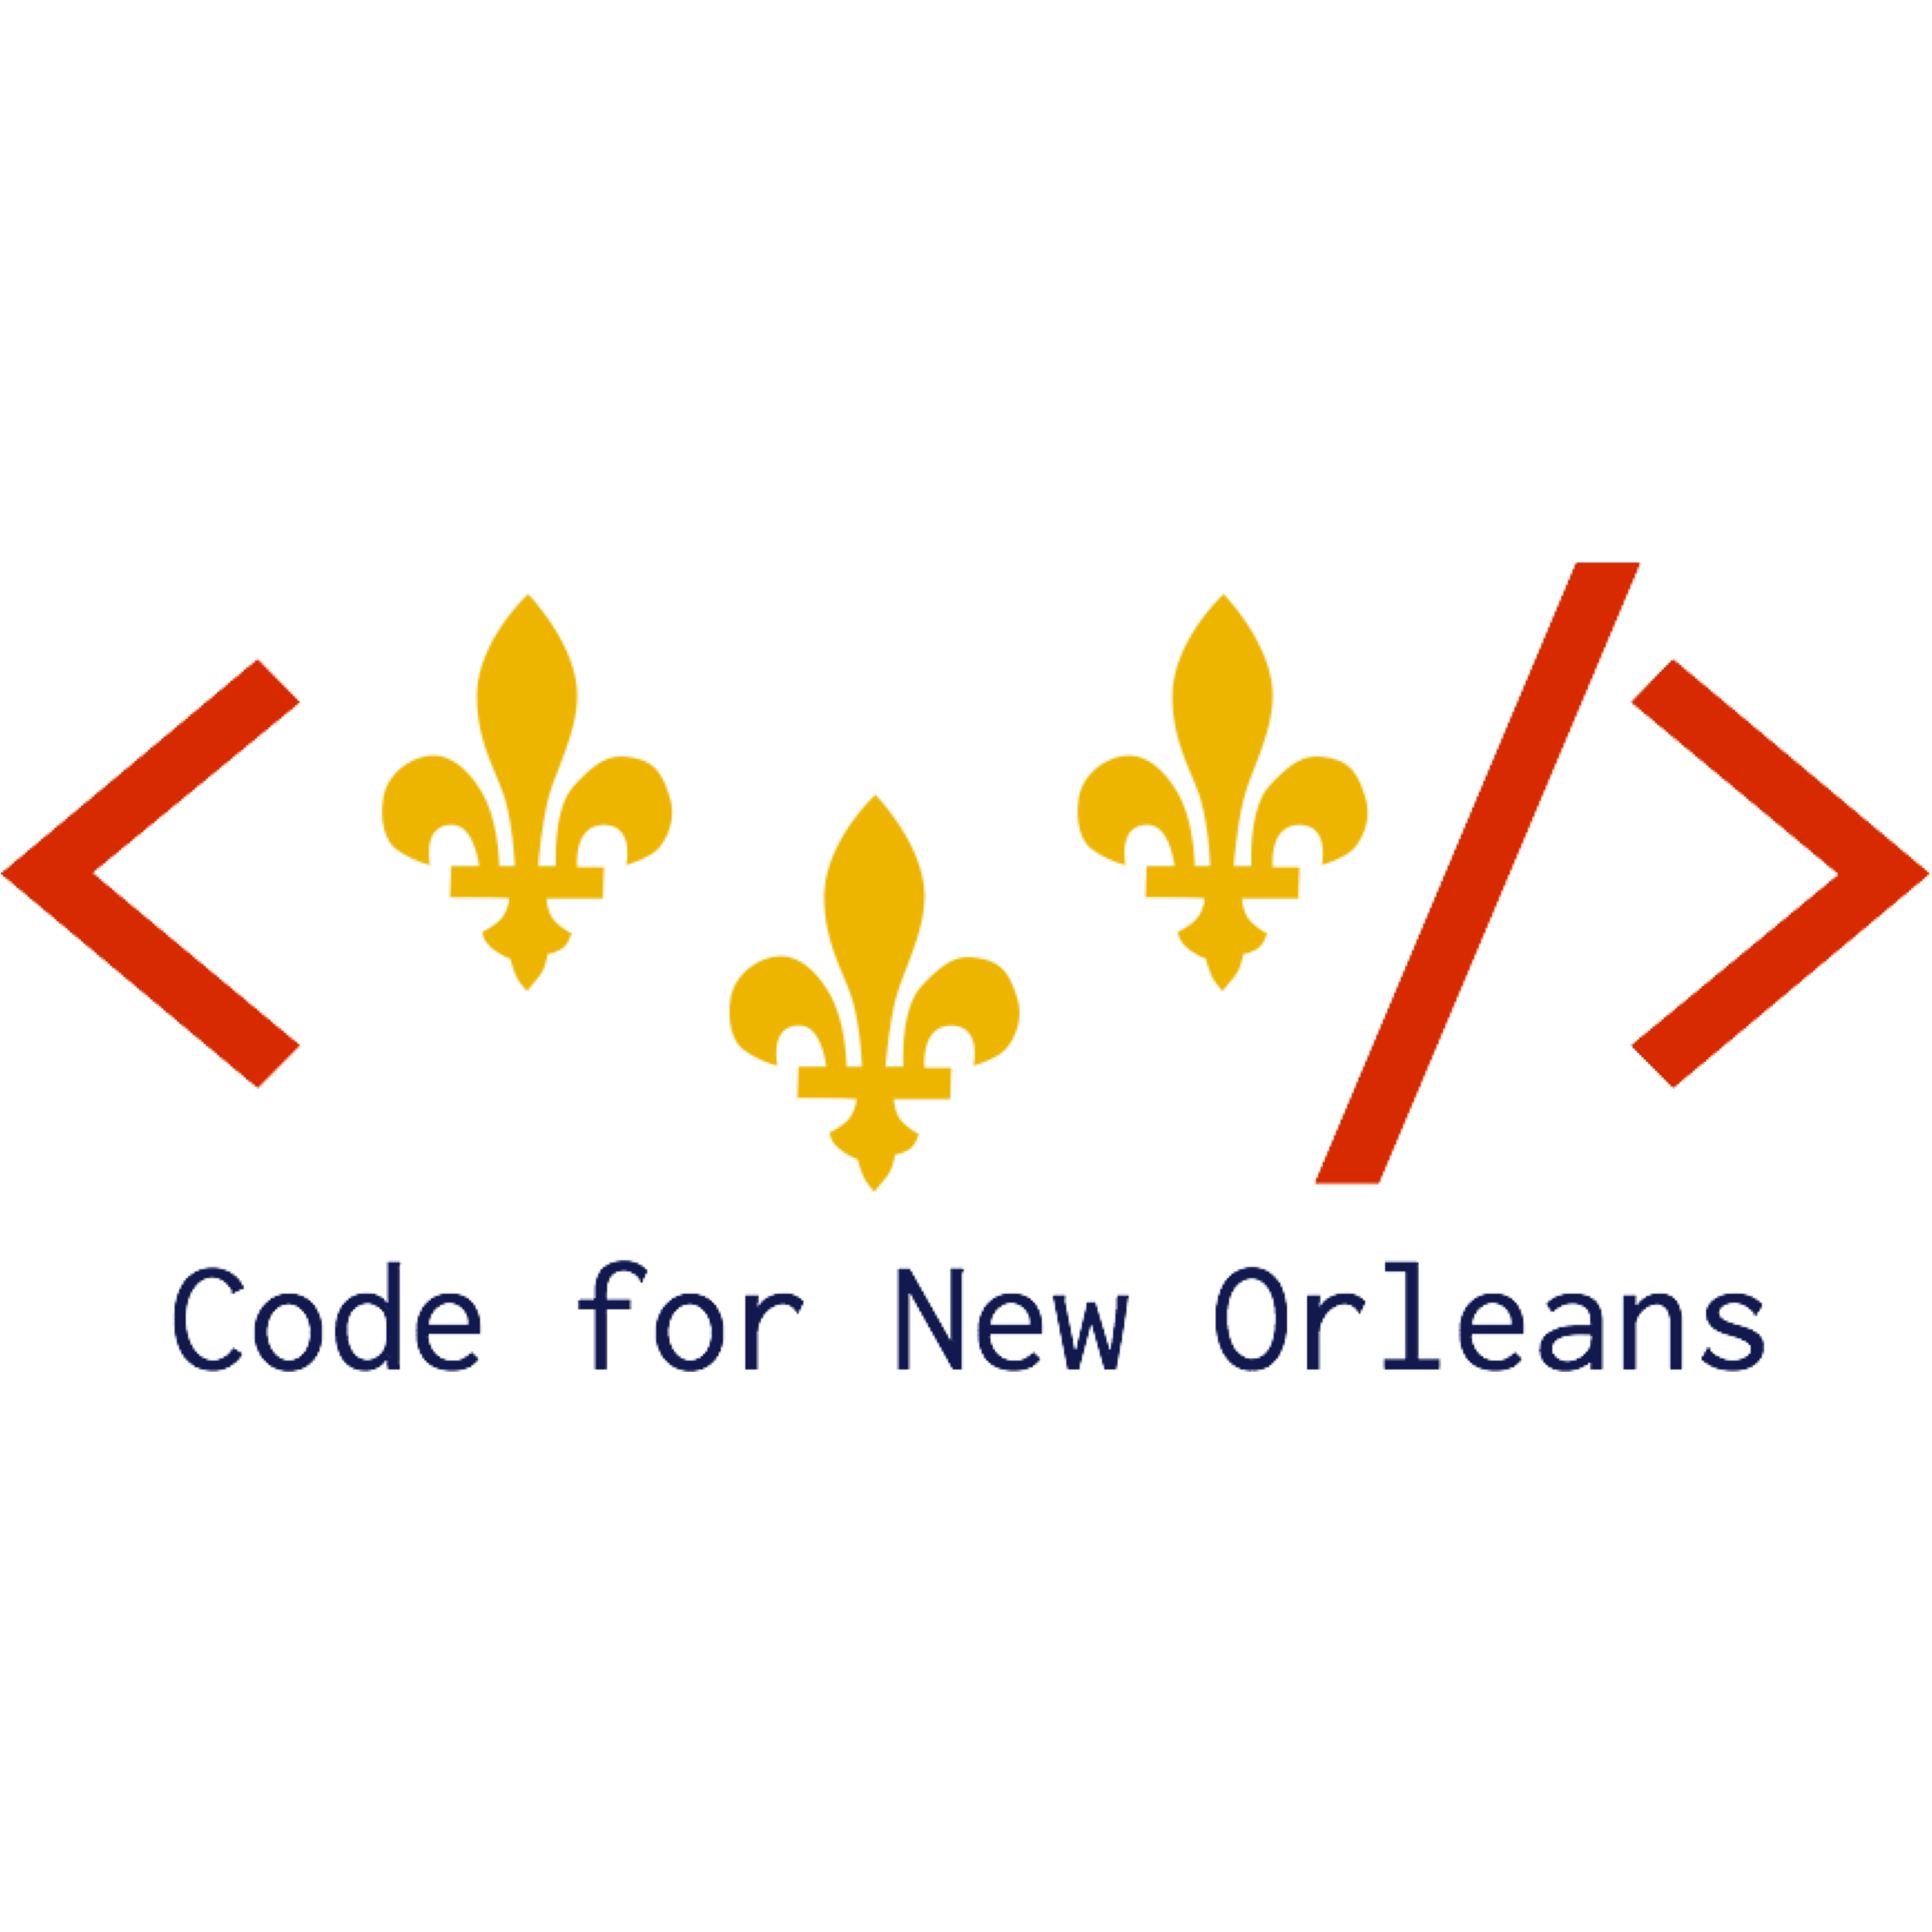 Code For New Orleans